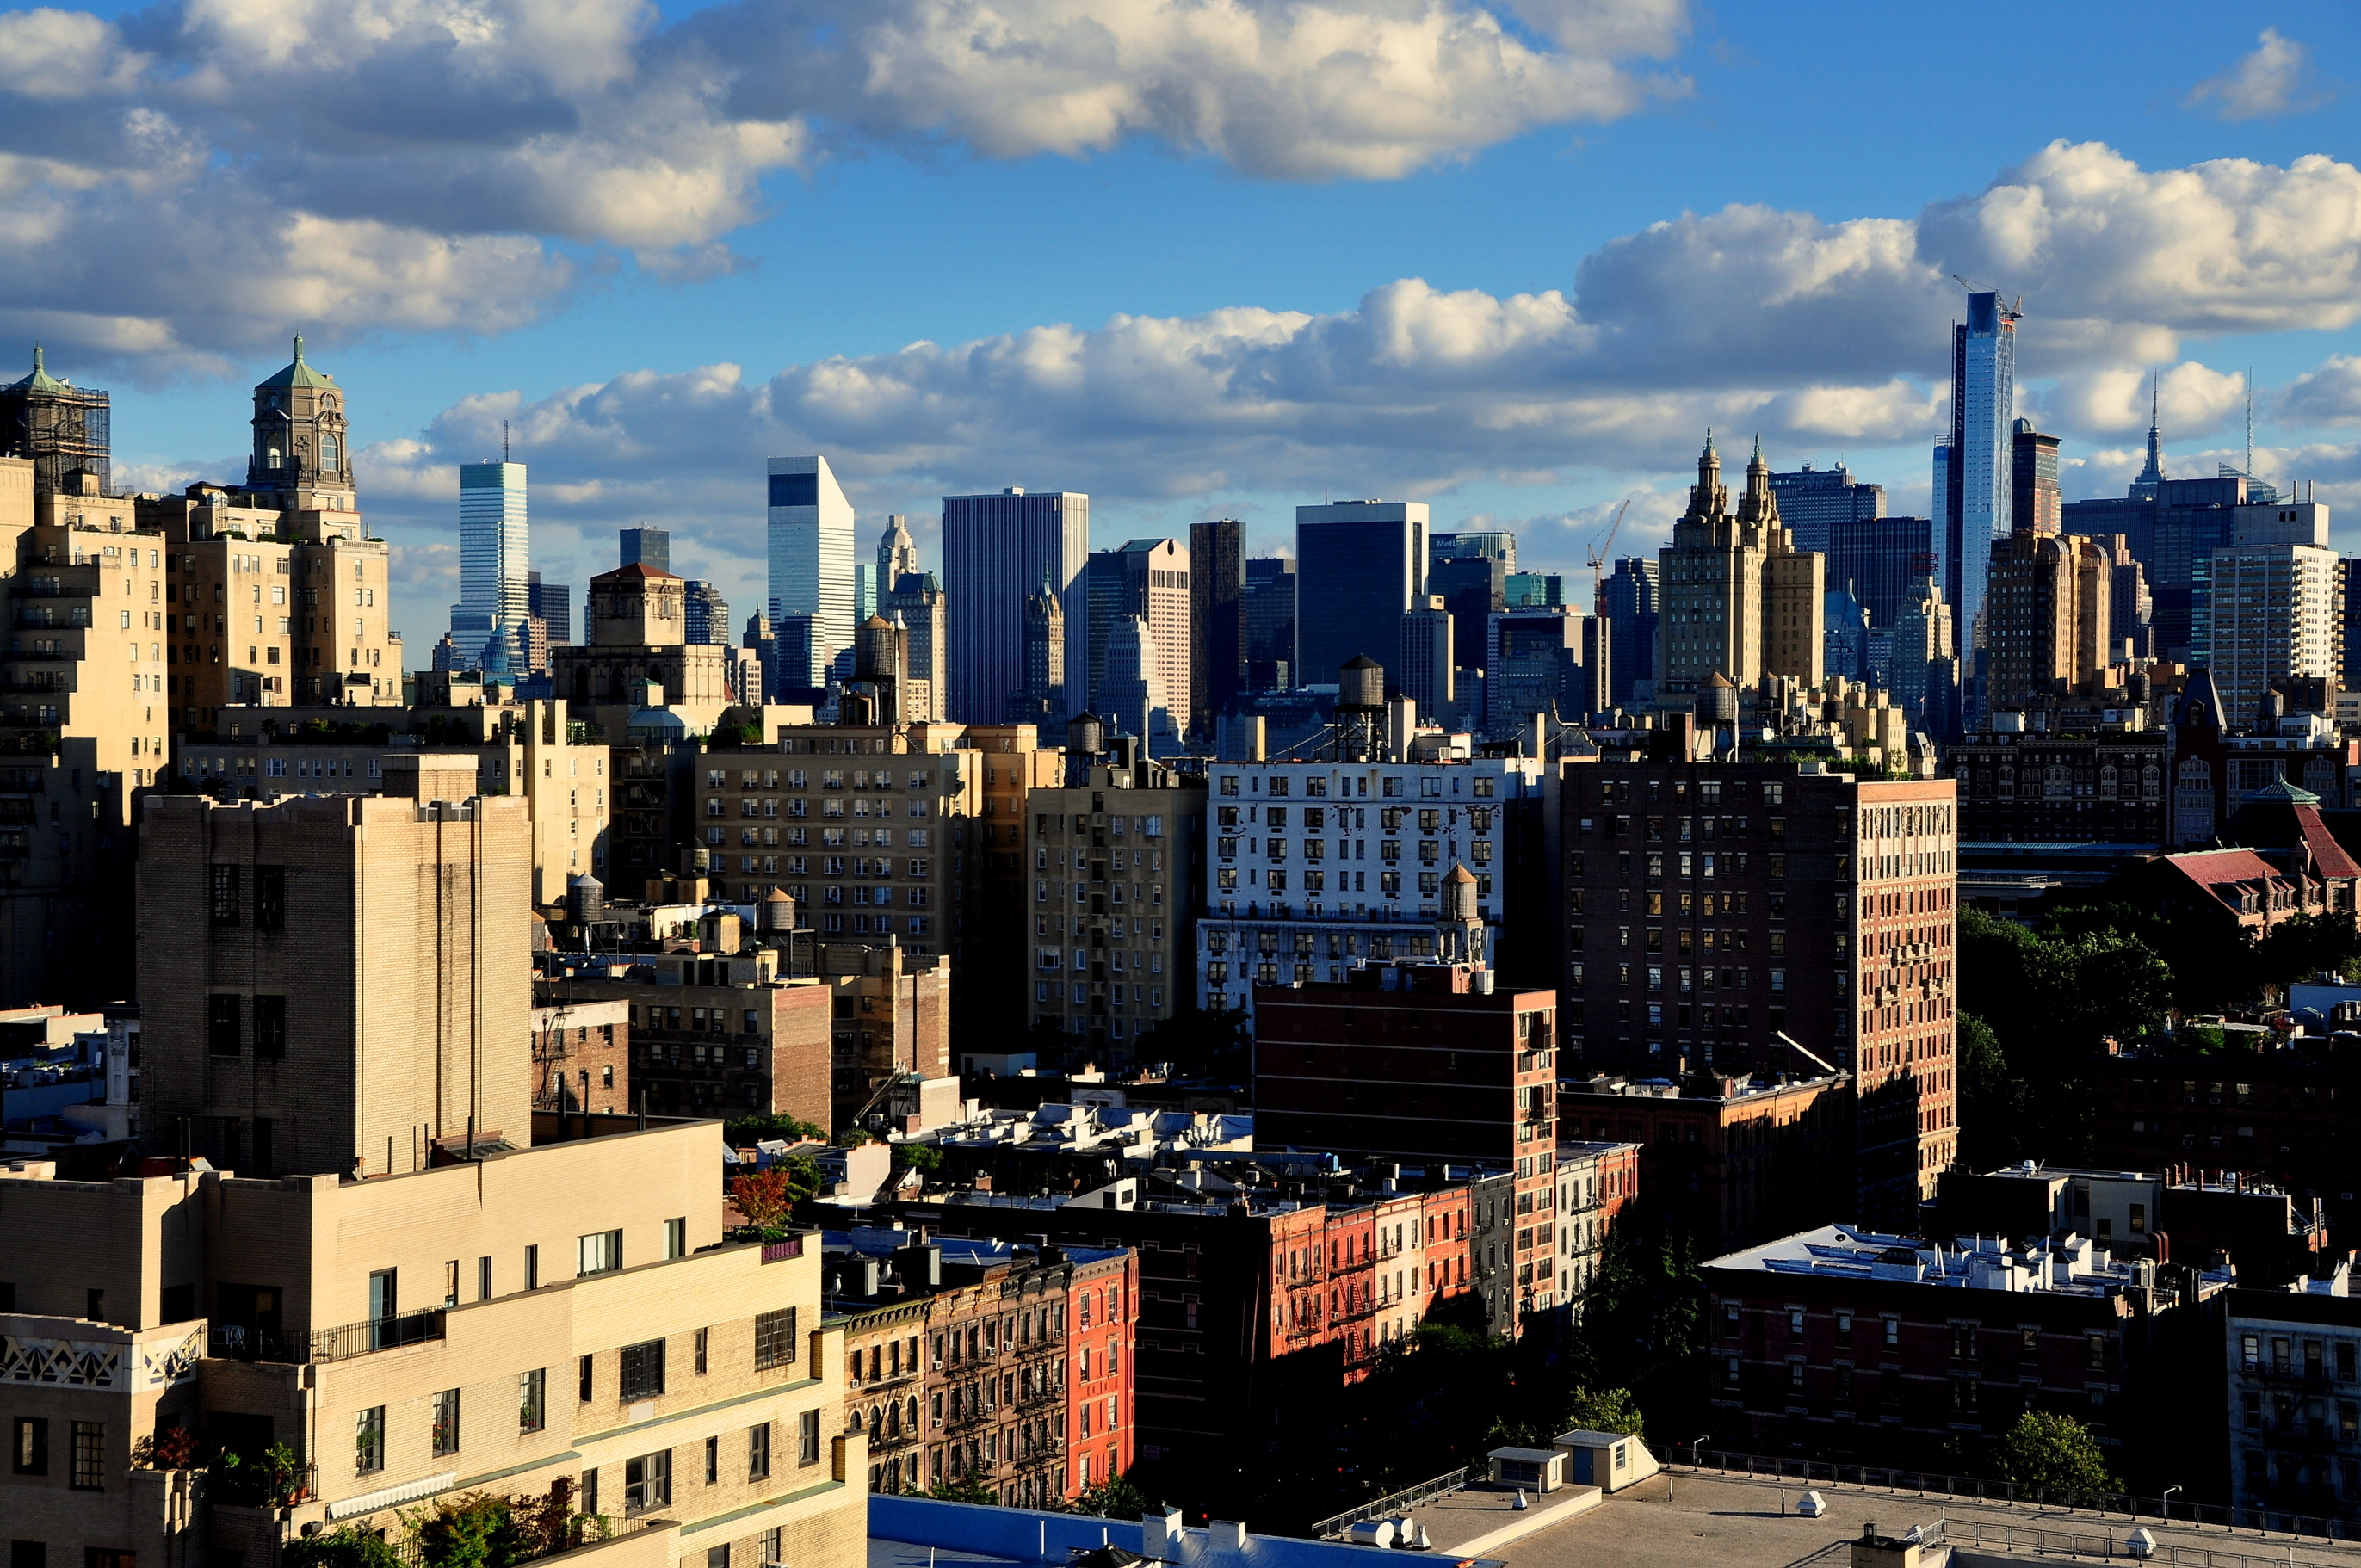 rooftops-new-york-city.jpg?mtime=20180710131521#asset:102451